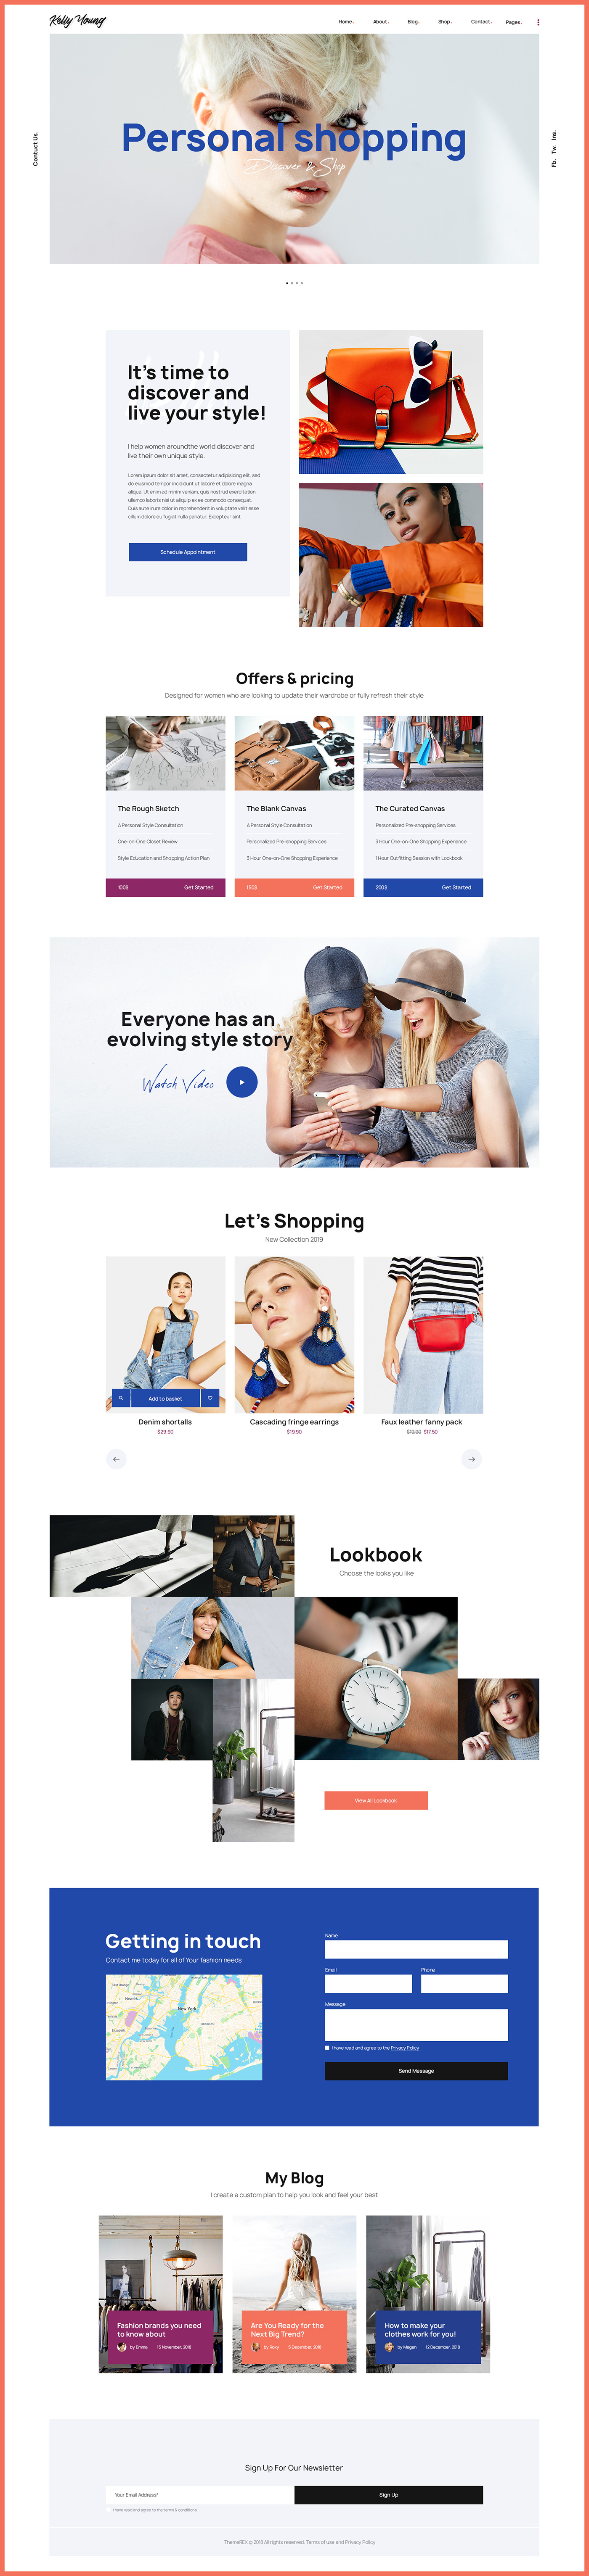 appointments Blog blogger Booking designer Ecommerce Events Fashion  Fashion Retailer lifestyle